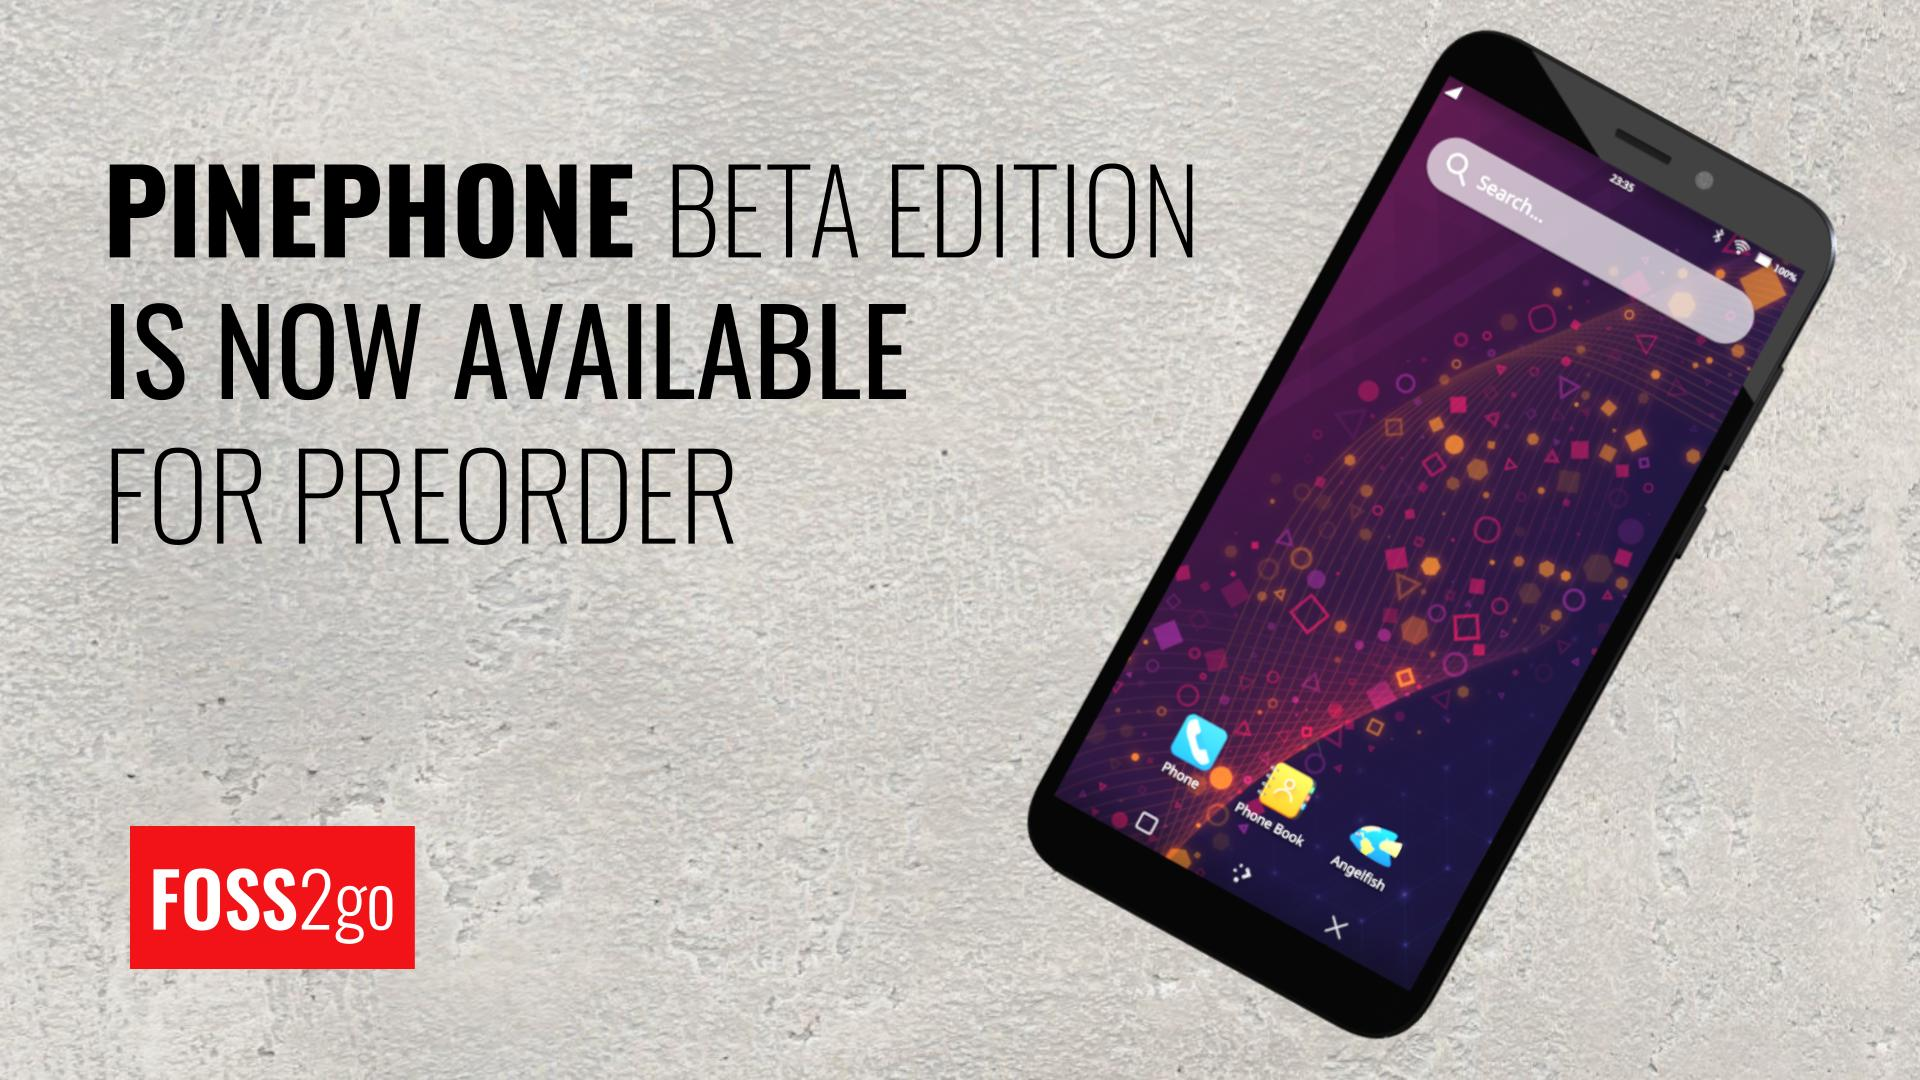 Pinephone BETA edition is now available for preorder